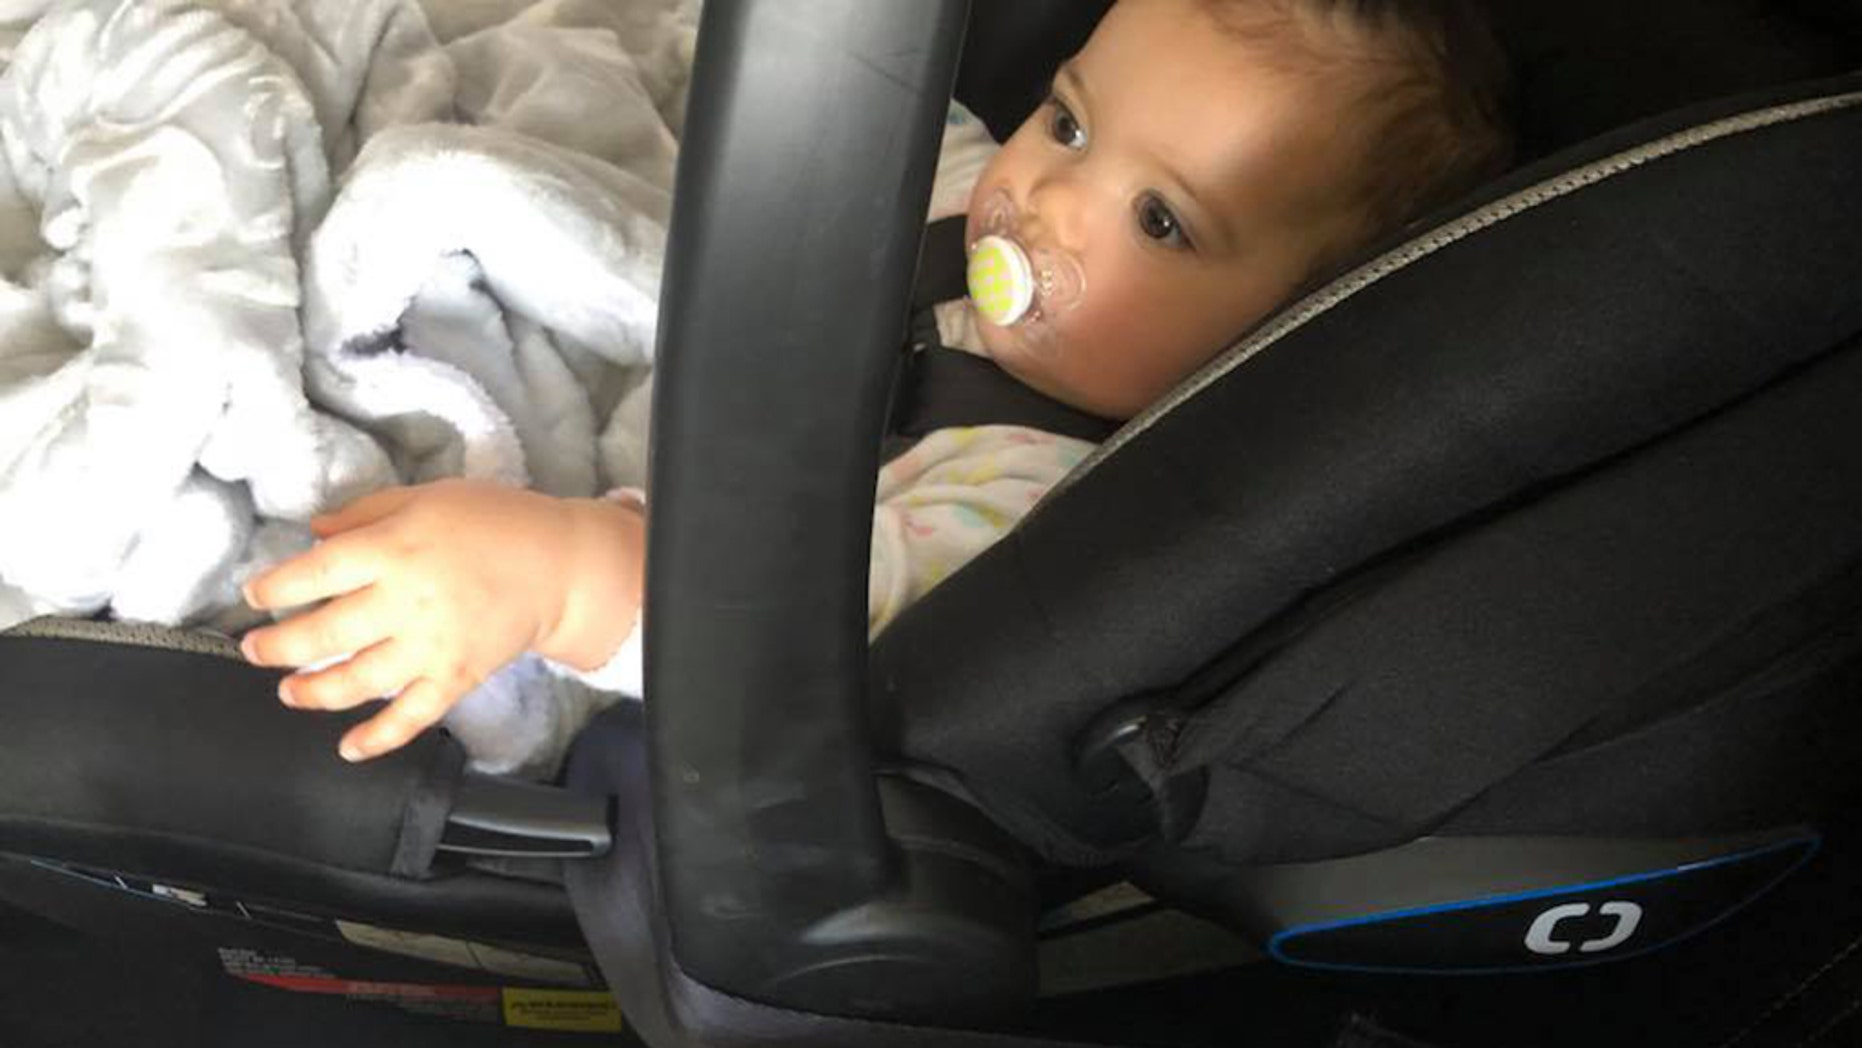 Cassie Hutchins claimed United Airlines crew on her flight home from Denver would not allow her small daughter to sit rear-facing in her car seat.